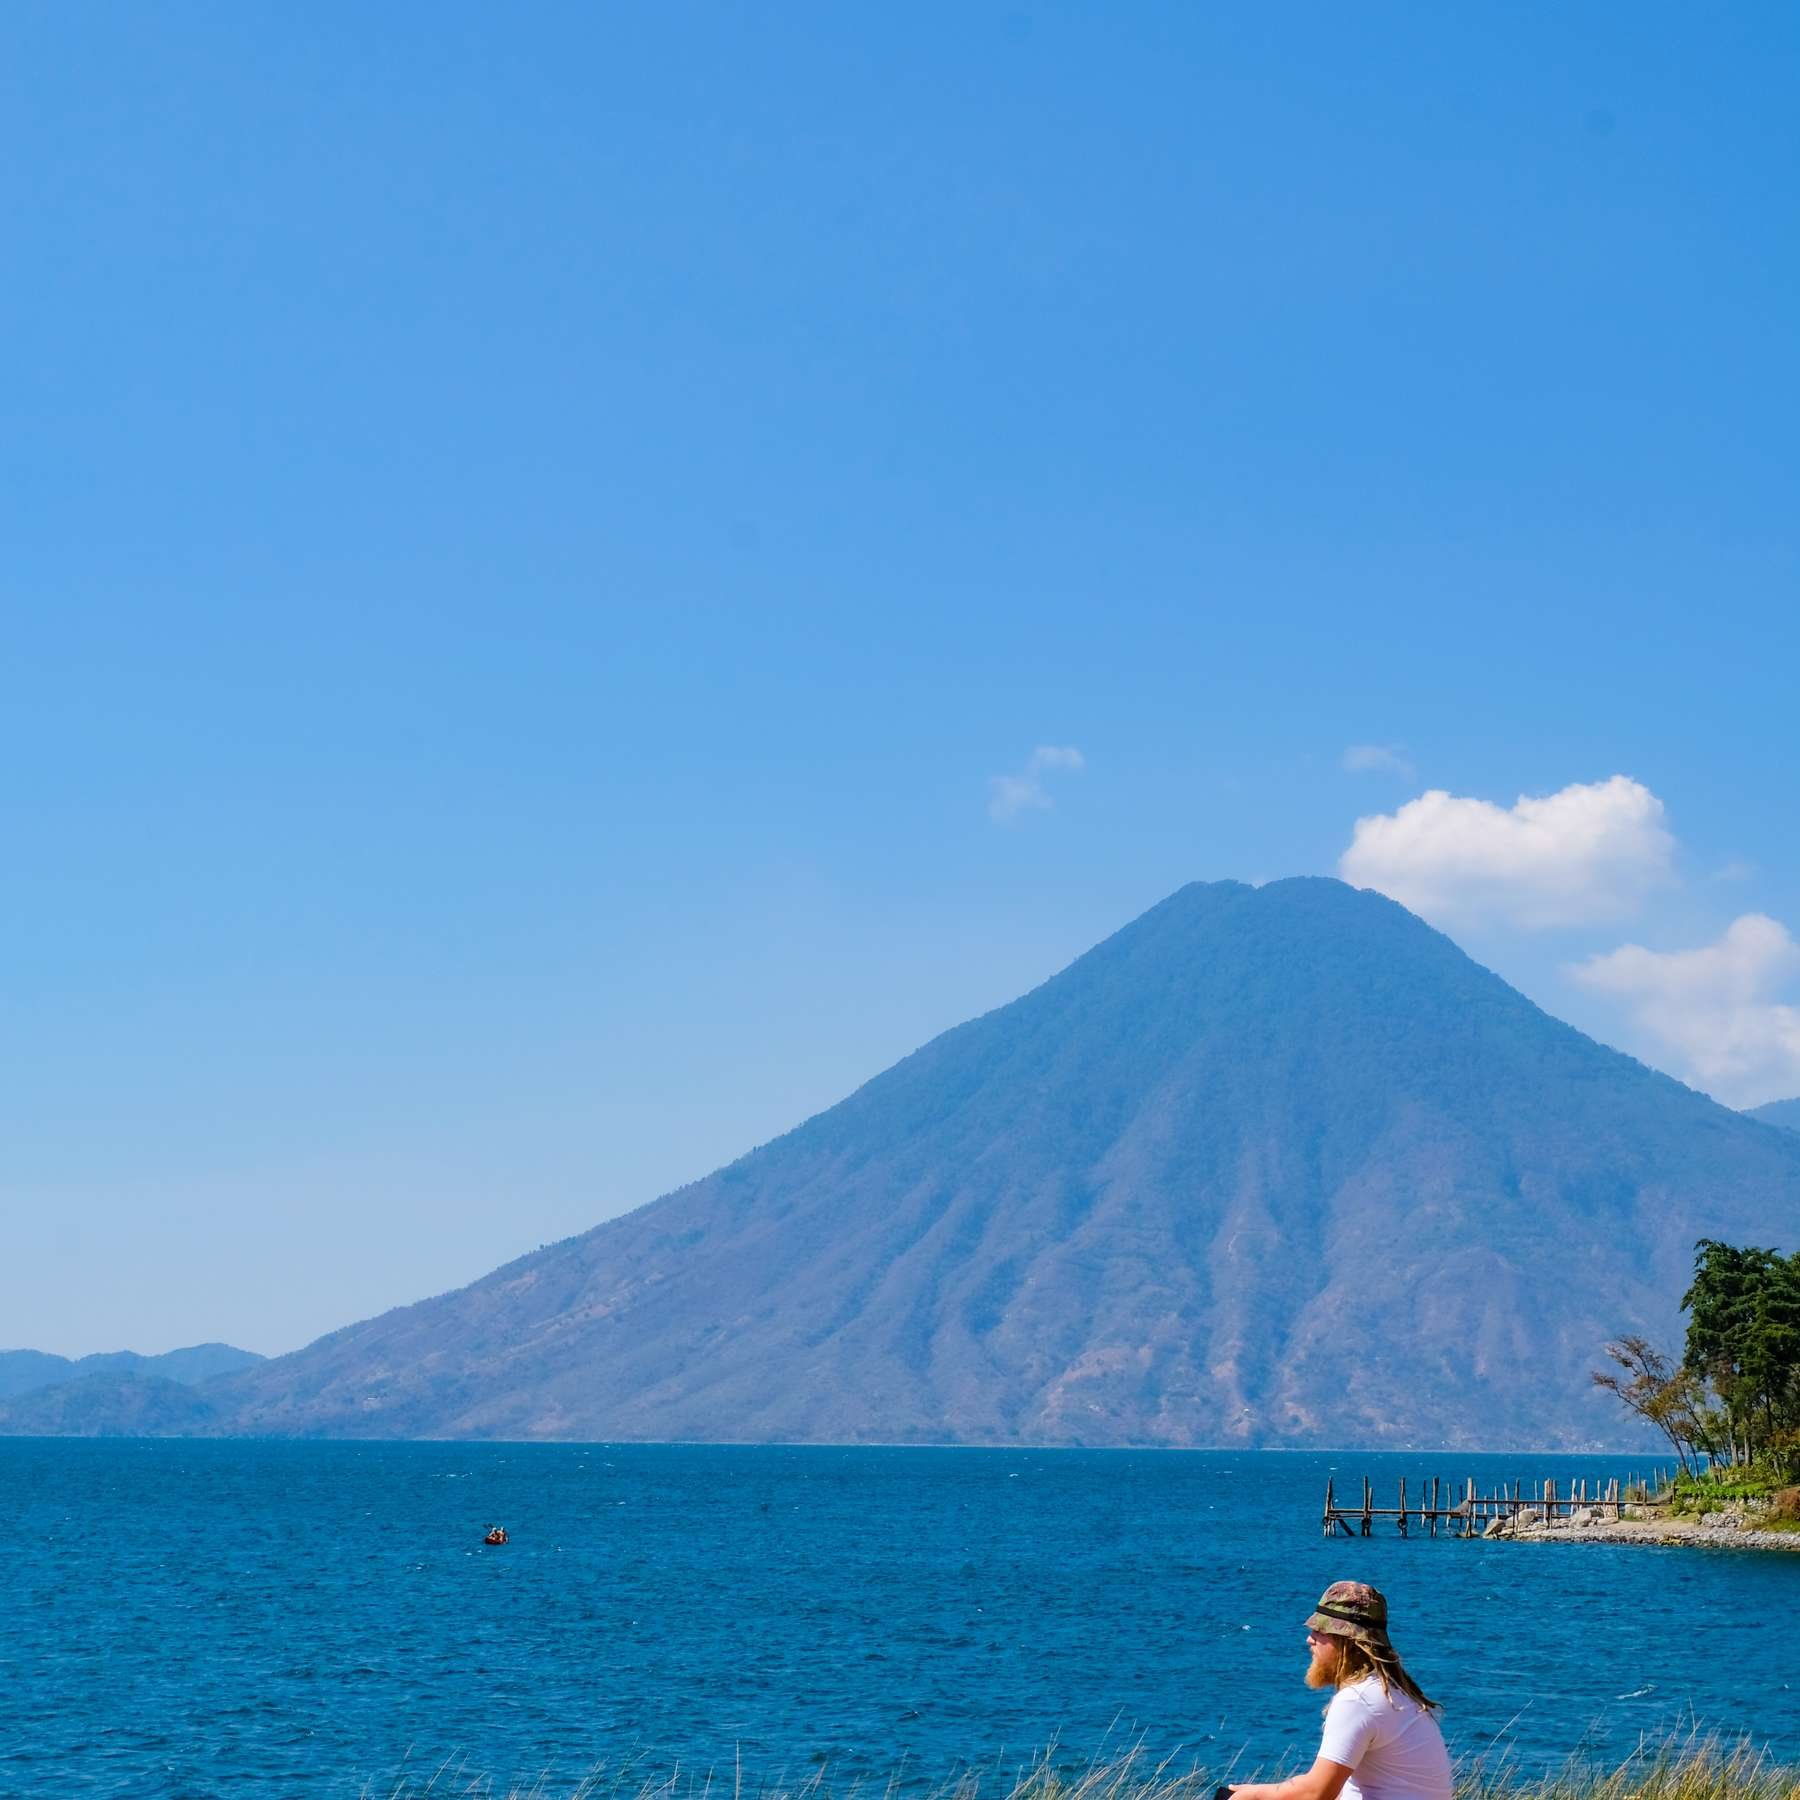 A person sitting on the coast of Lake Atitlan with a volcano in the background